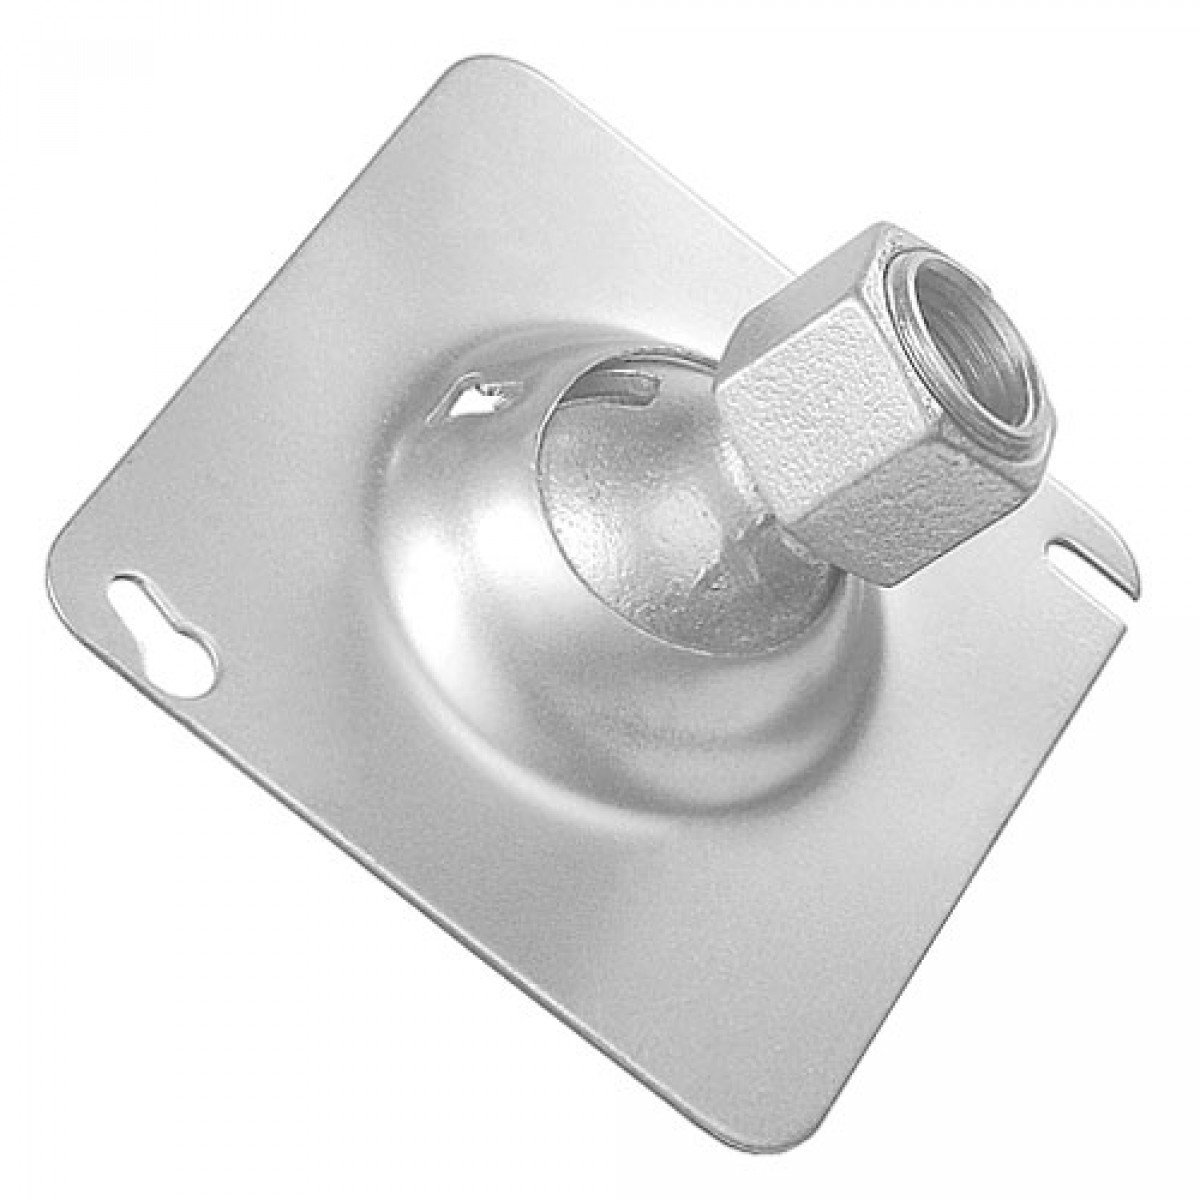 2 Pcs, Zinc Plated Steel 4 In. Square Swivel Fixture Hanger Cover for 1/2 In. Pipe to Hang Light Fixtures, Security Cameras, Speakers & Electrical/Electronic Devices